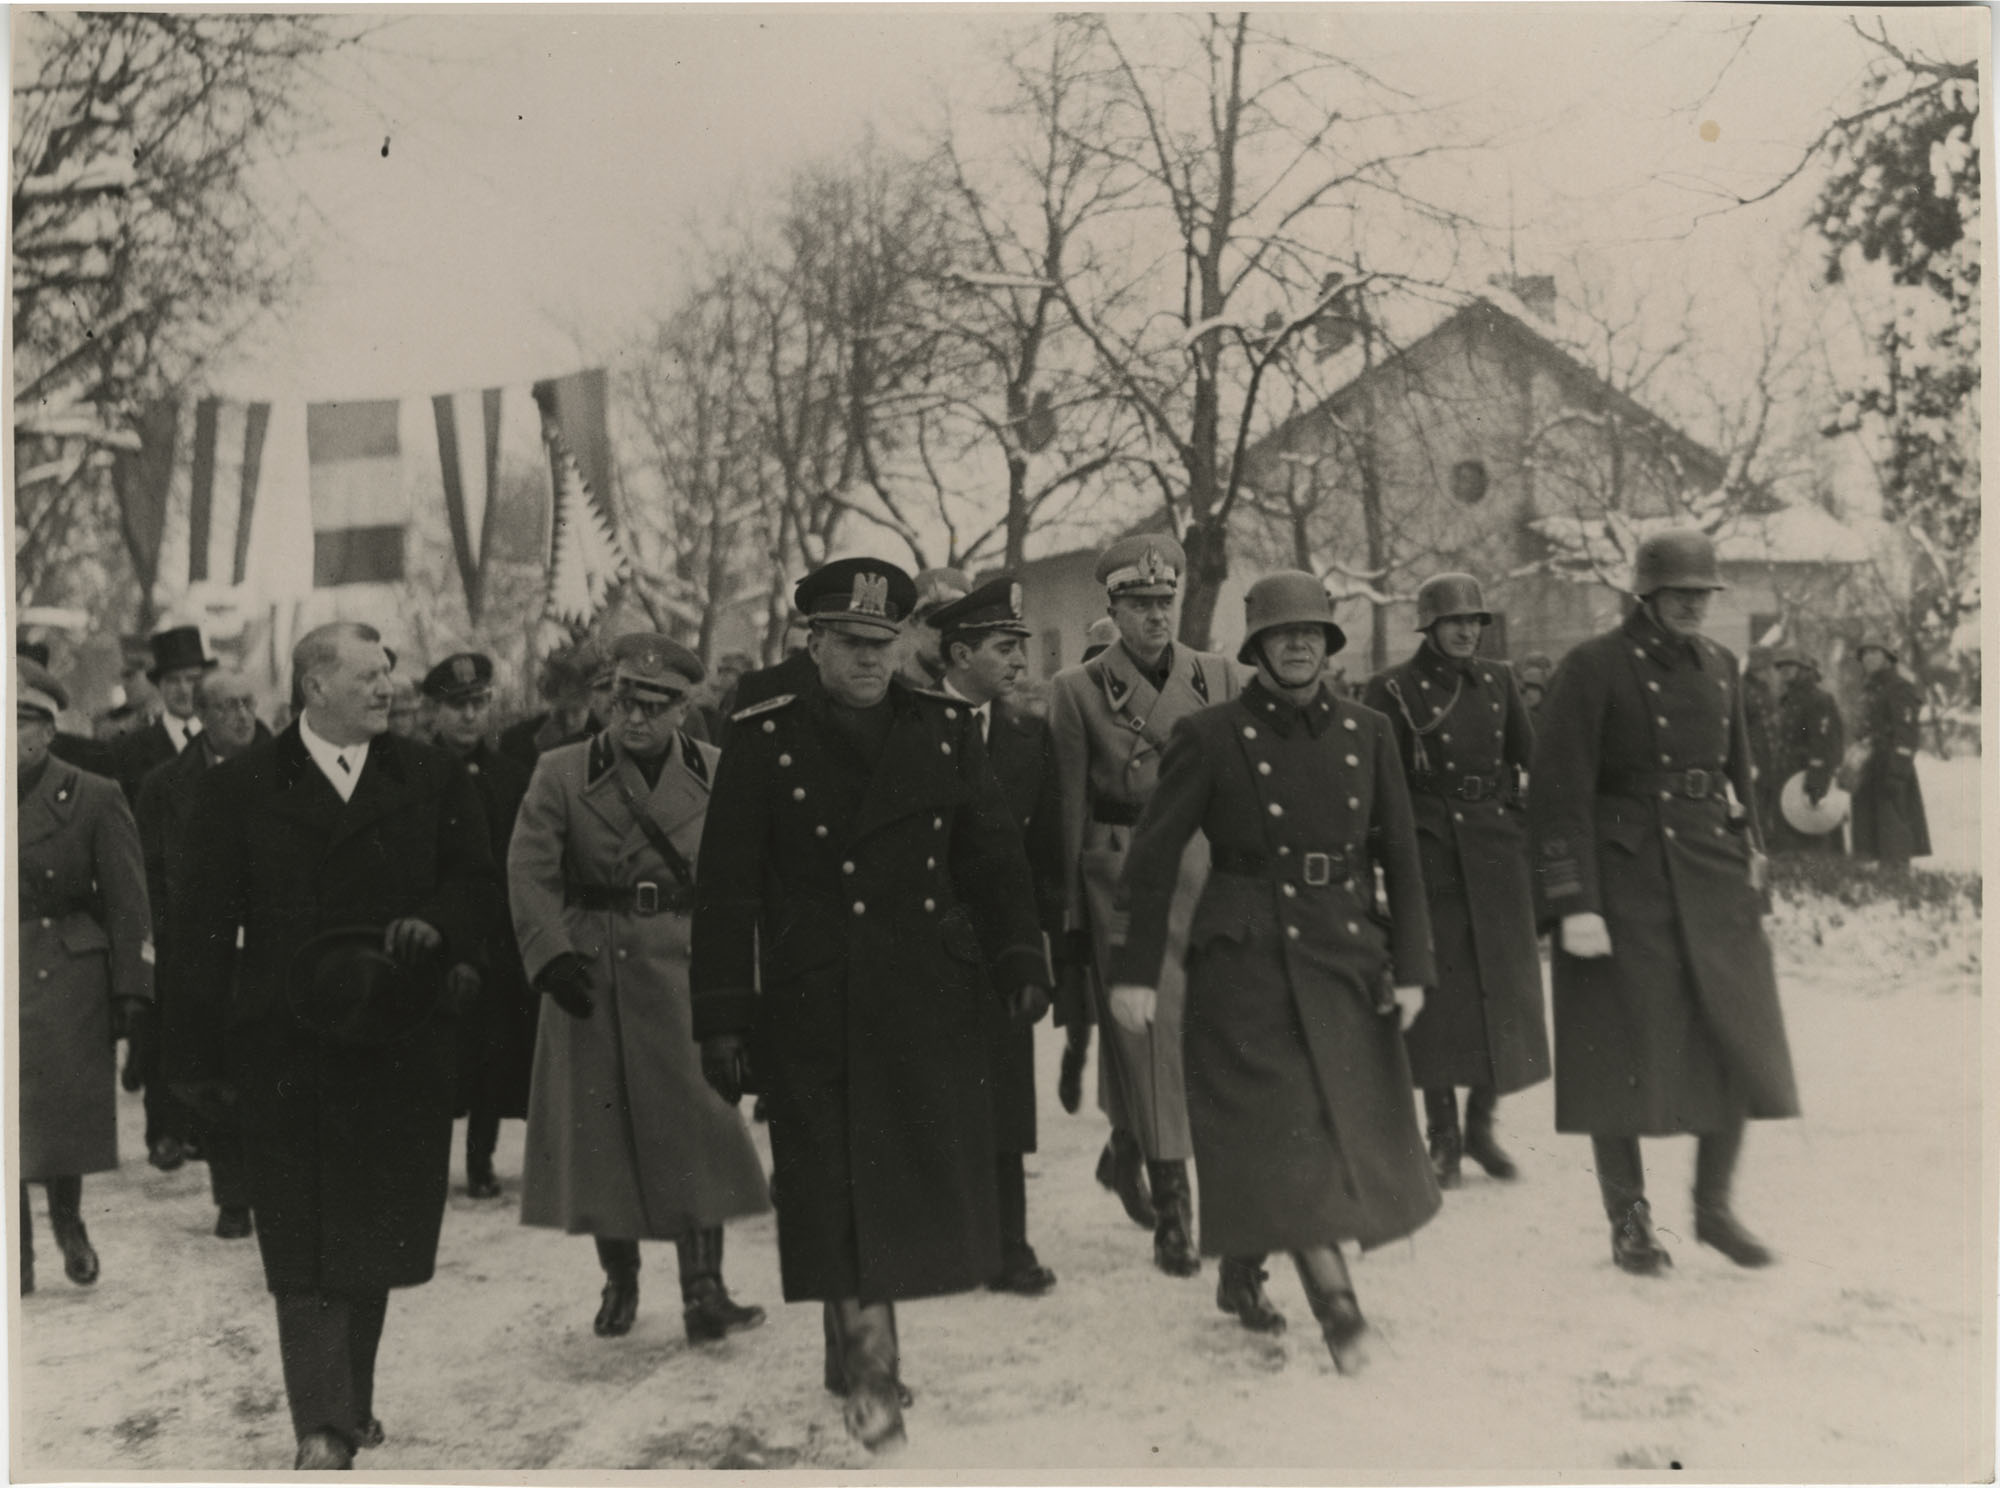 Mario Pansa and military officials in Budapest, Hungary, Photograph 7